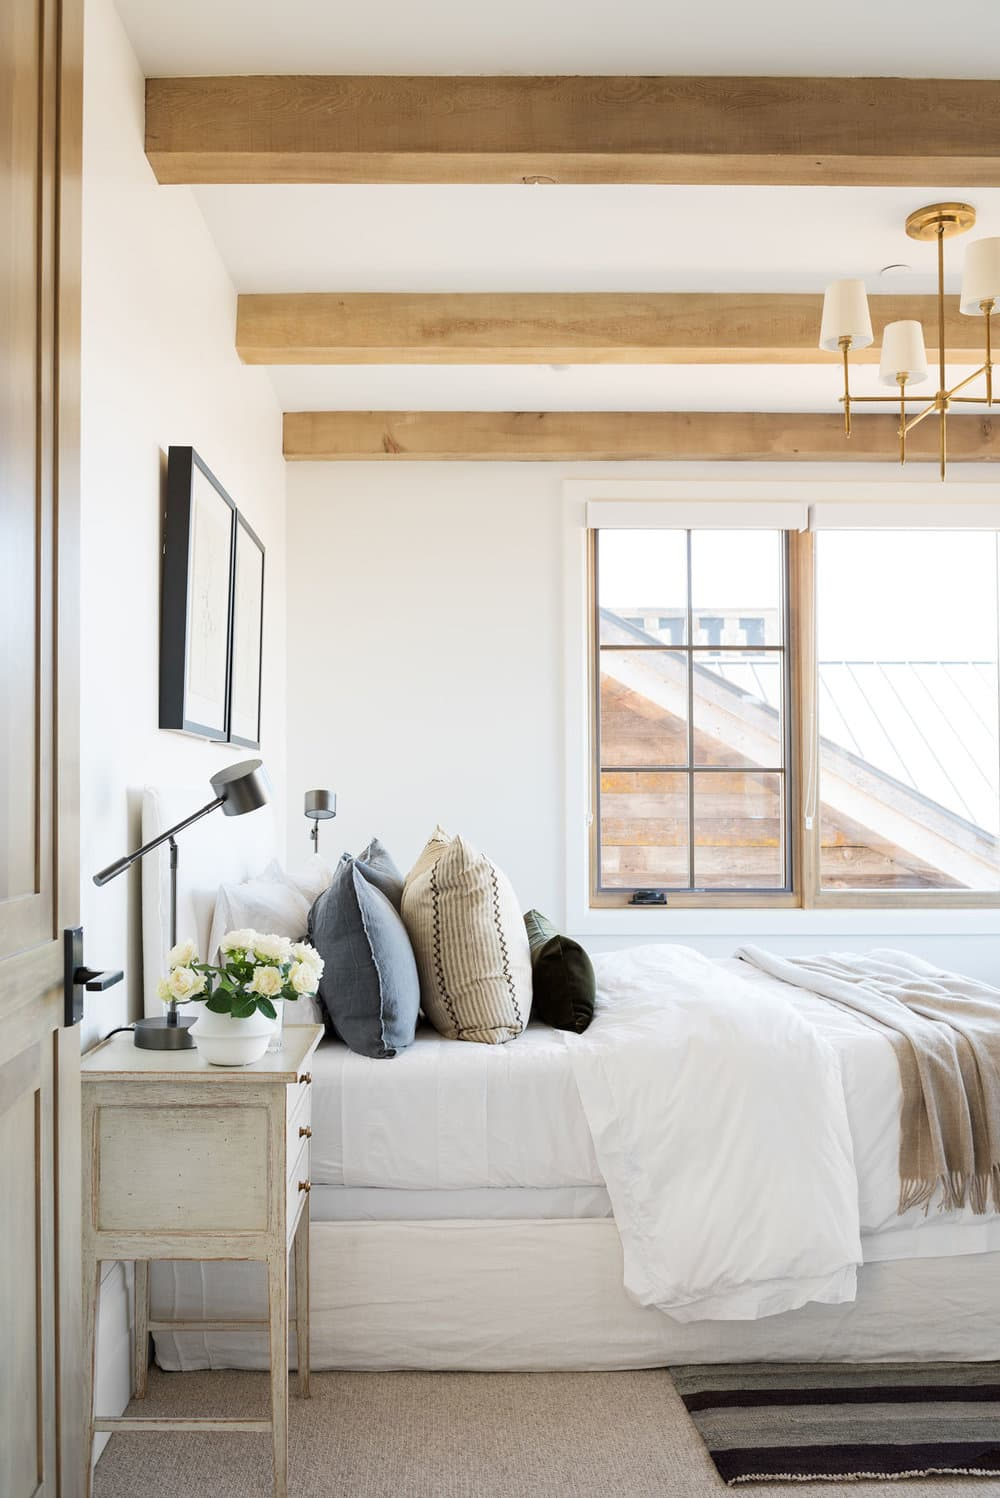 this is a calming bedroom by studio mcgee with minimal bedside decor